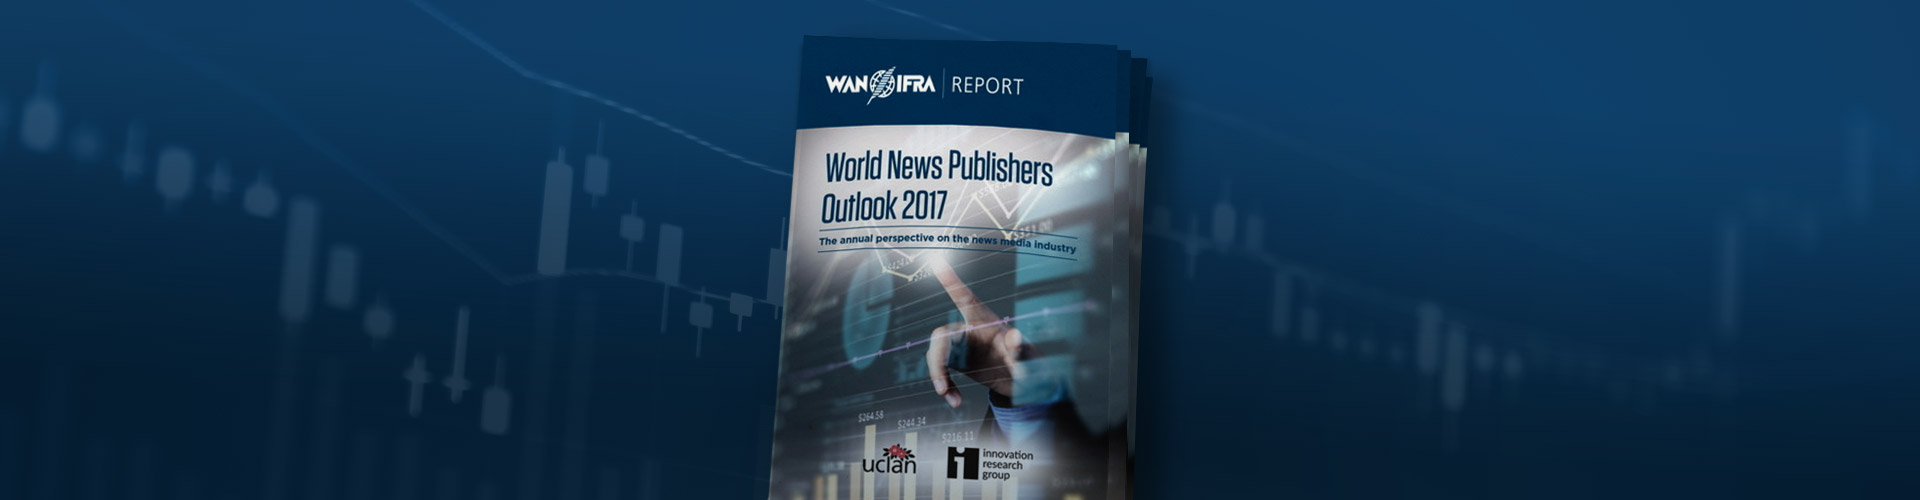 WAN IFRA Releases World News Publisher Outlook Report